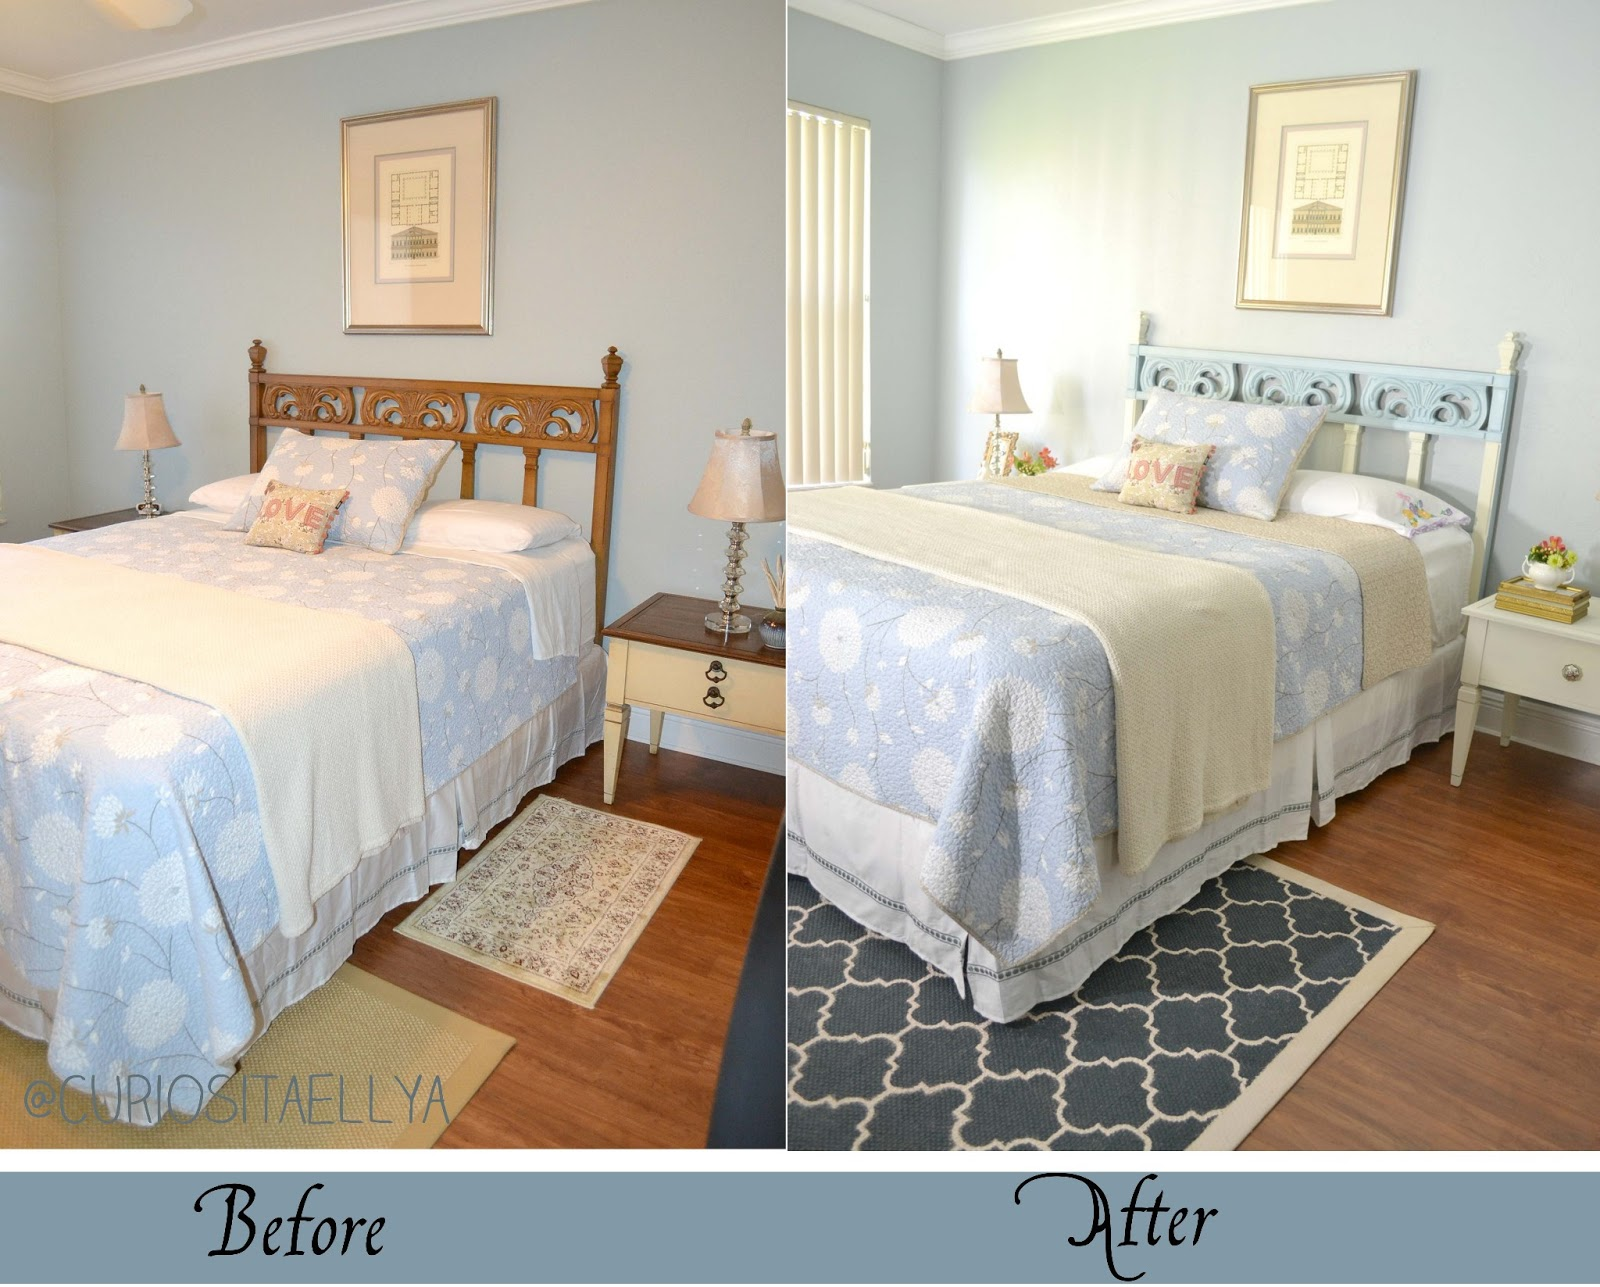 Curiositaellya Guest Bedroom Furniture Makeover